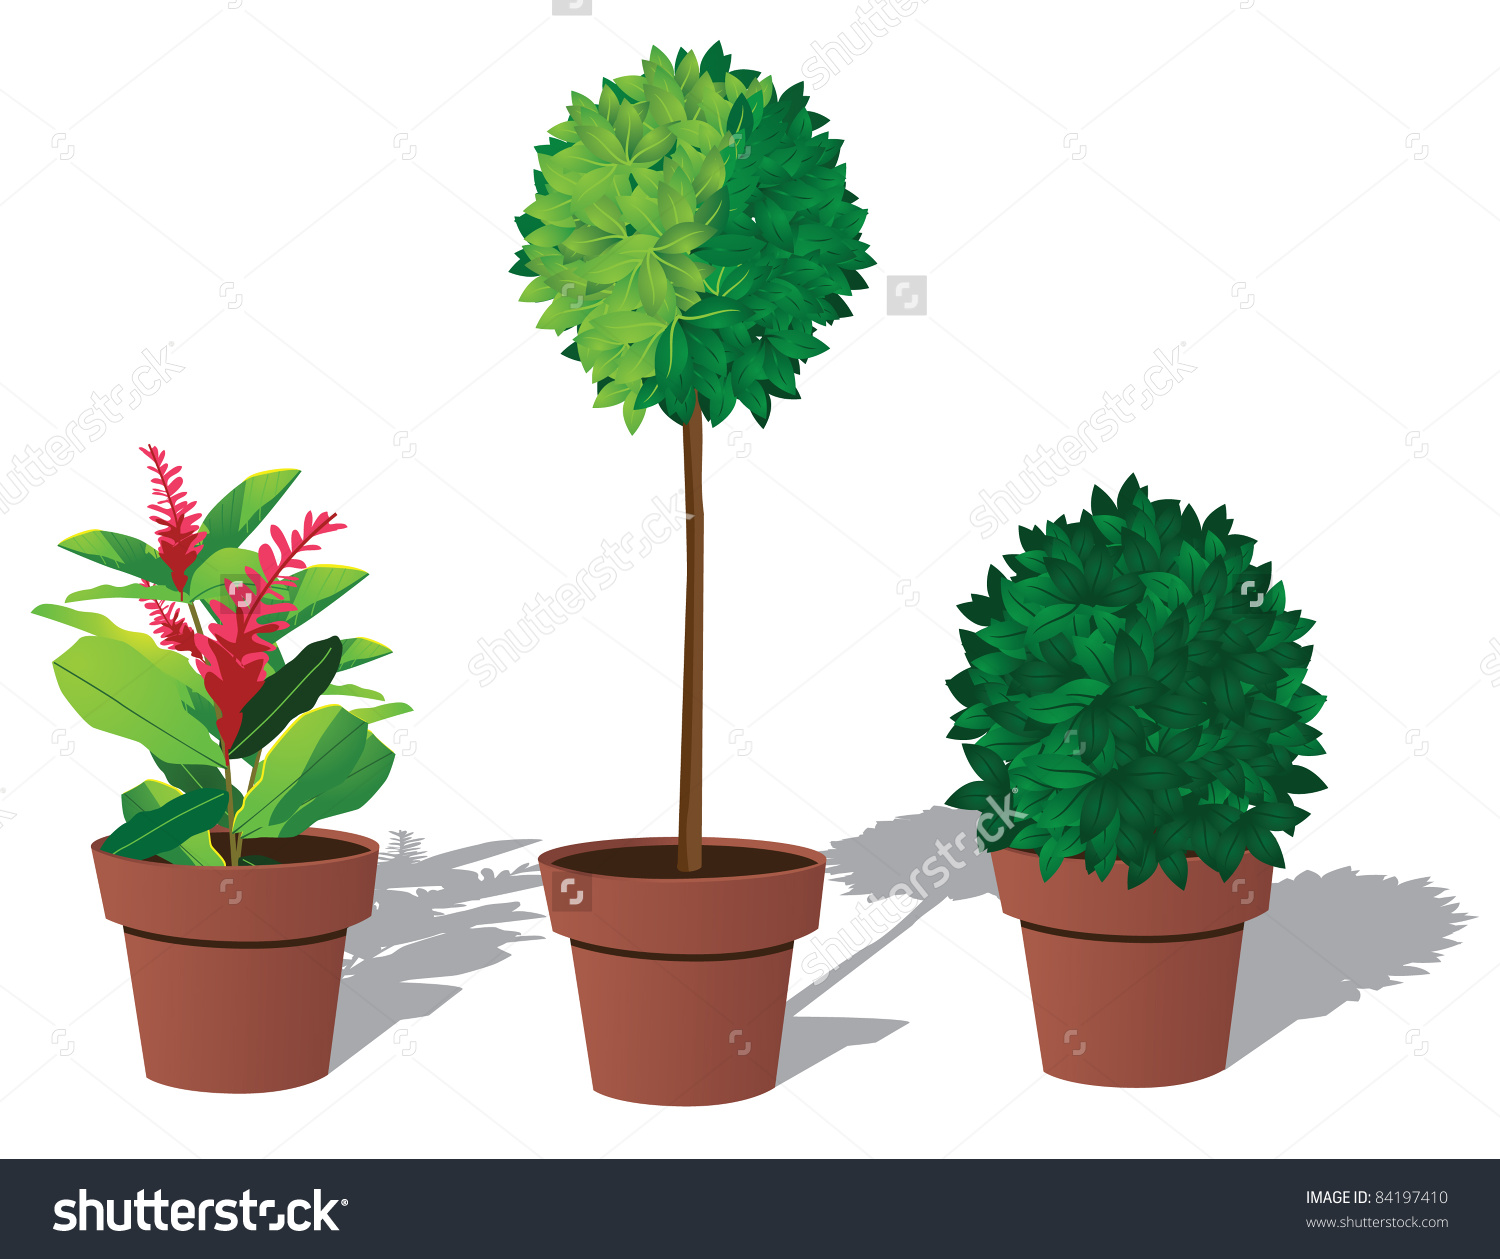 Plants clipground art clip. Bushes clipart potted